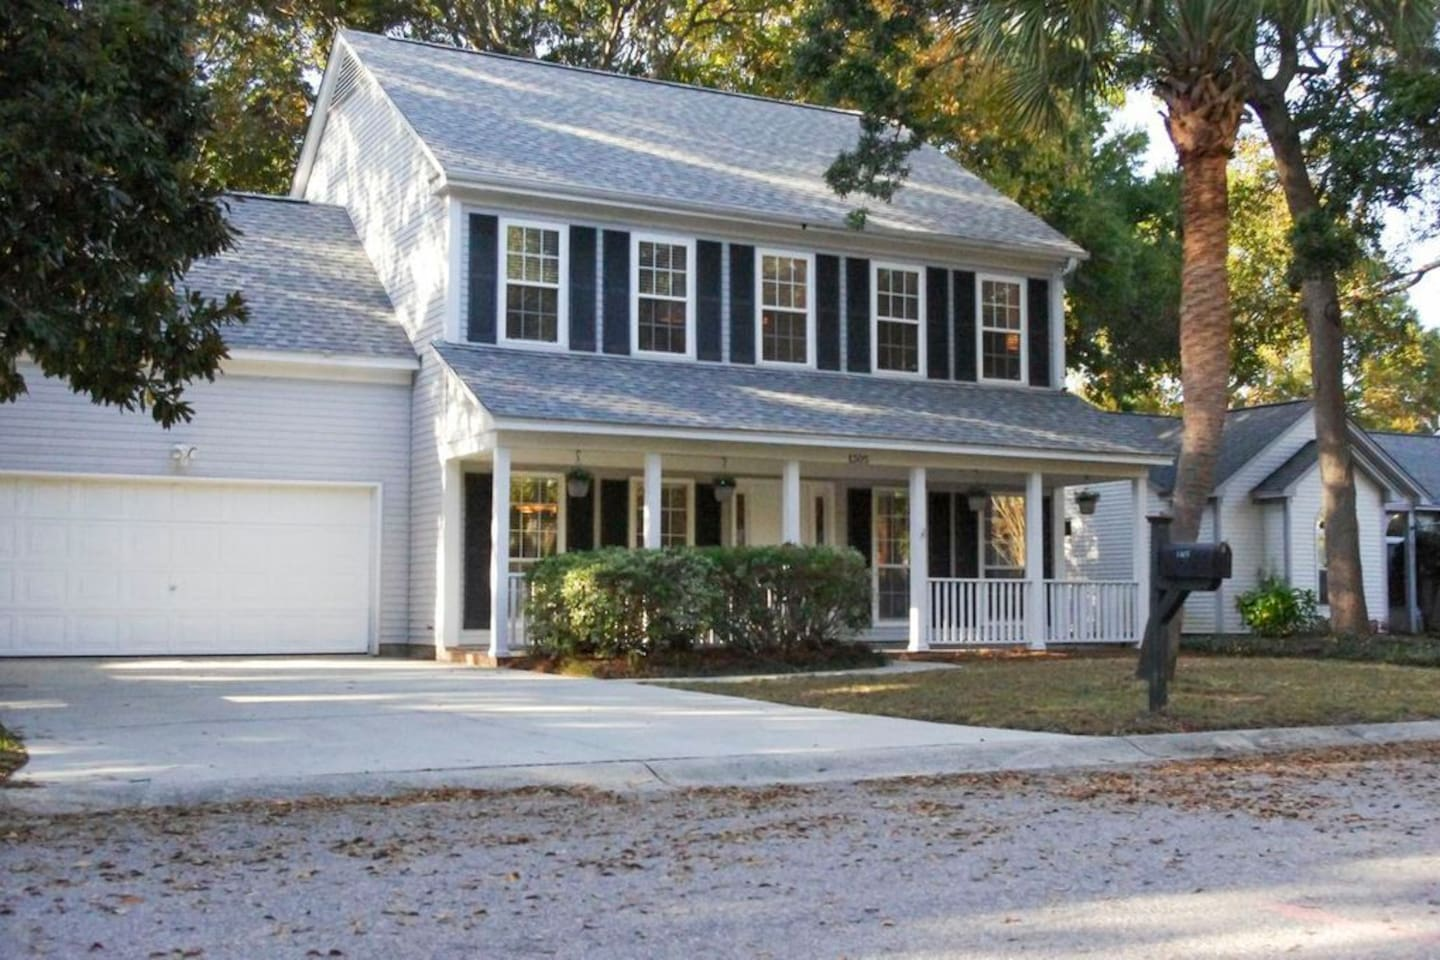 Quiet neighborhood and has 2 car garage with ample parking